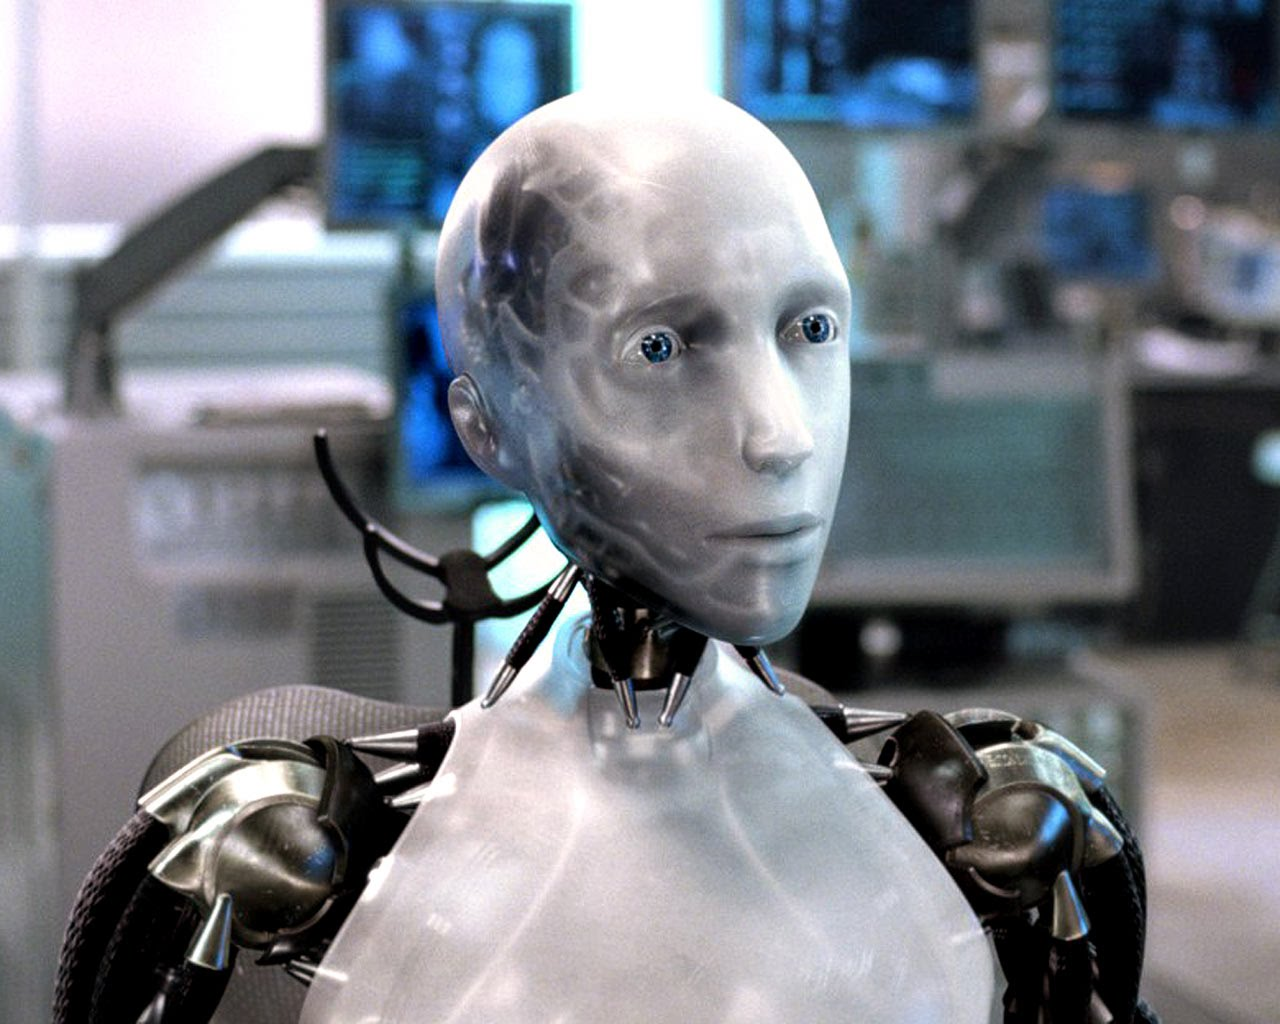 Robots will become 'electronic persons' under European Union plan